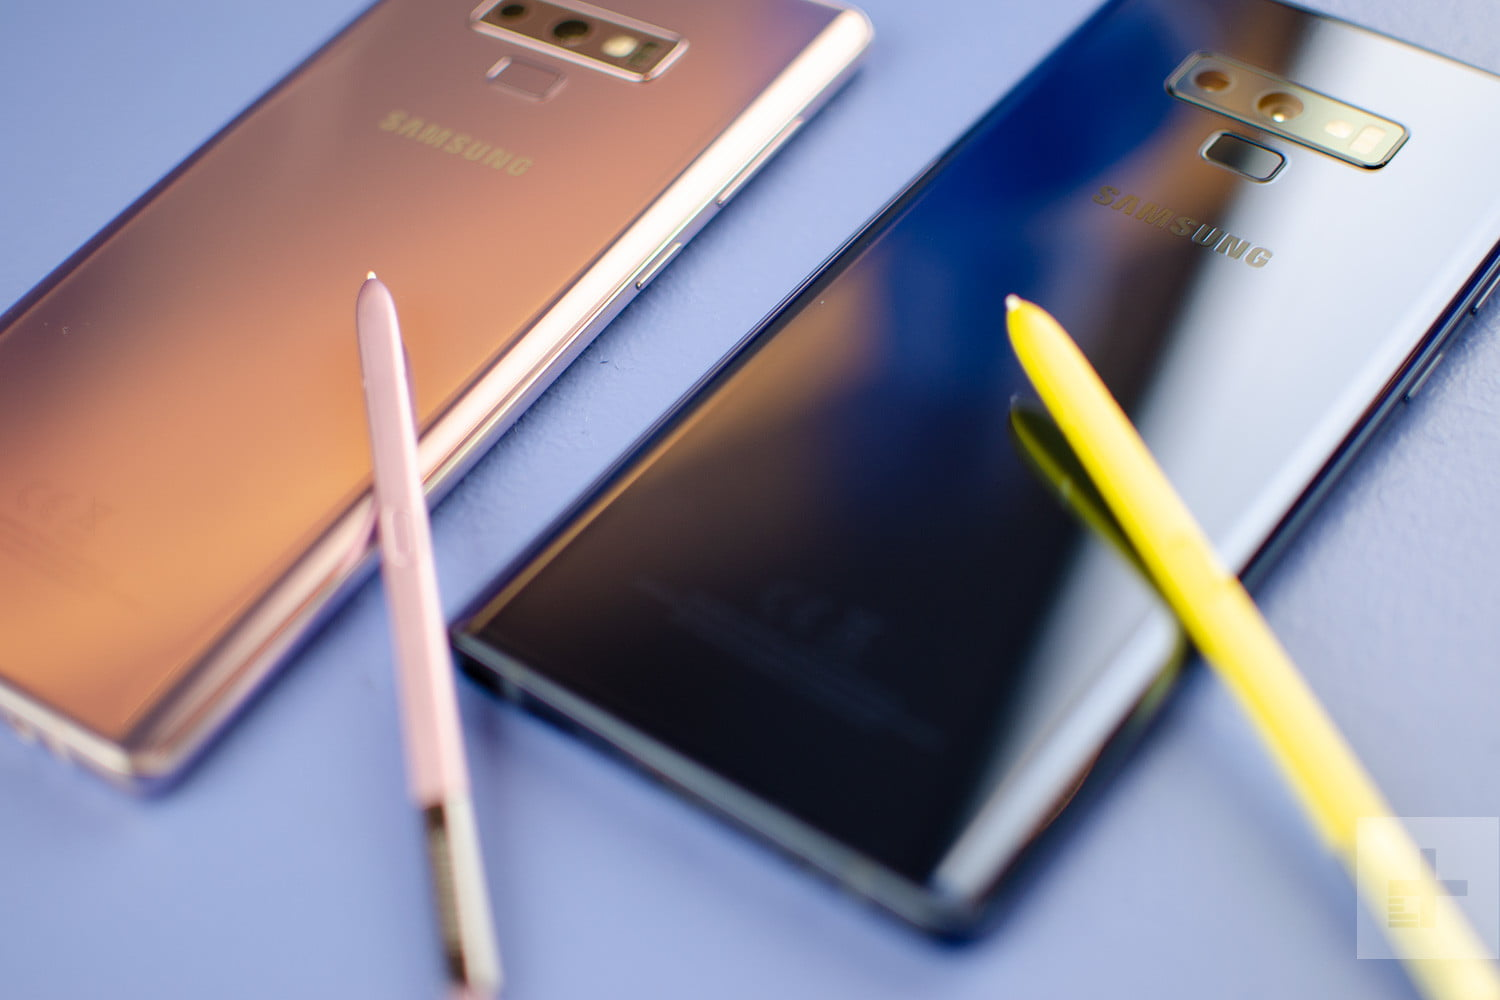 Galaxy Note 9 pink and blue s pens